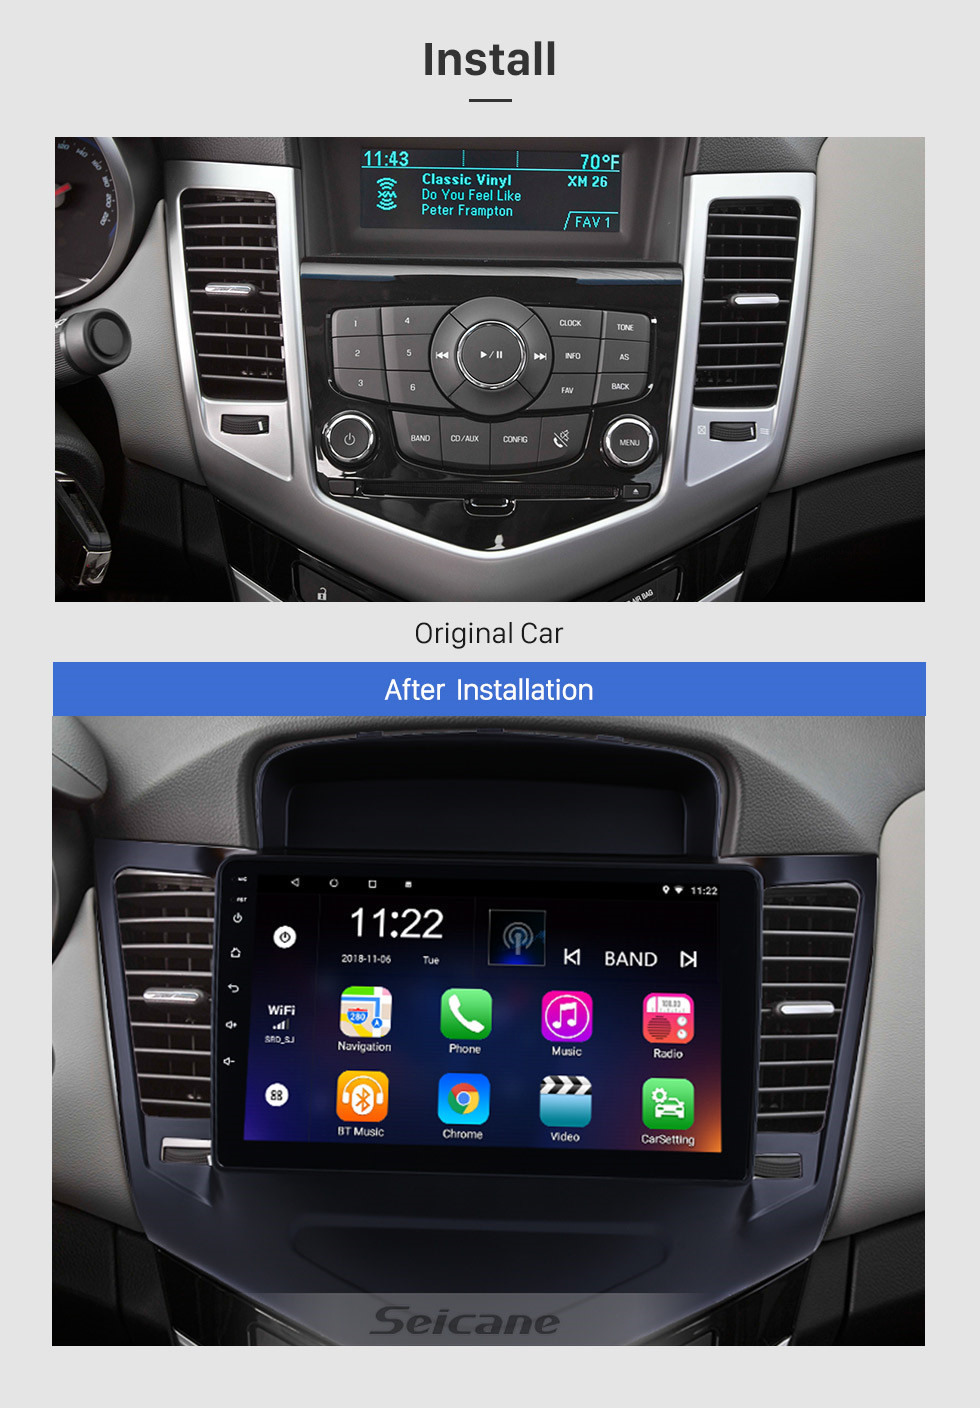 Seicane HD Touchscreen 9 inch Android 10.0 GPS Navigation Radio for Chevrolet Cruze 2013-2015 with Bluetooth USB WIFI AUX support DVR Carplay SWC 3G Backup camera